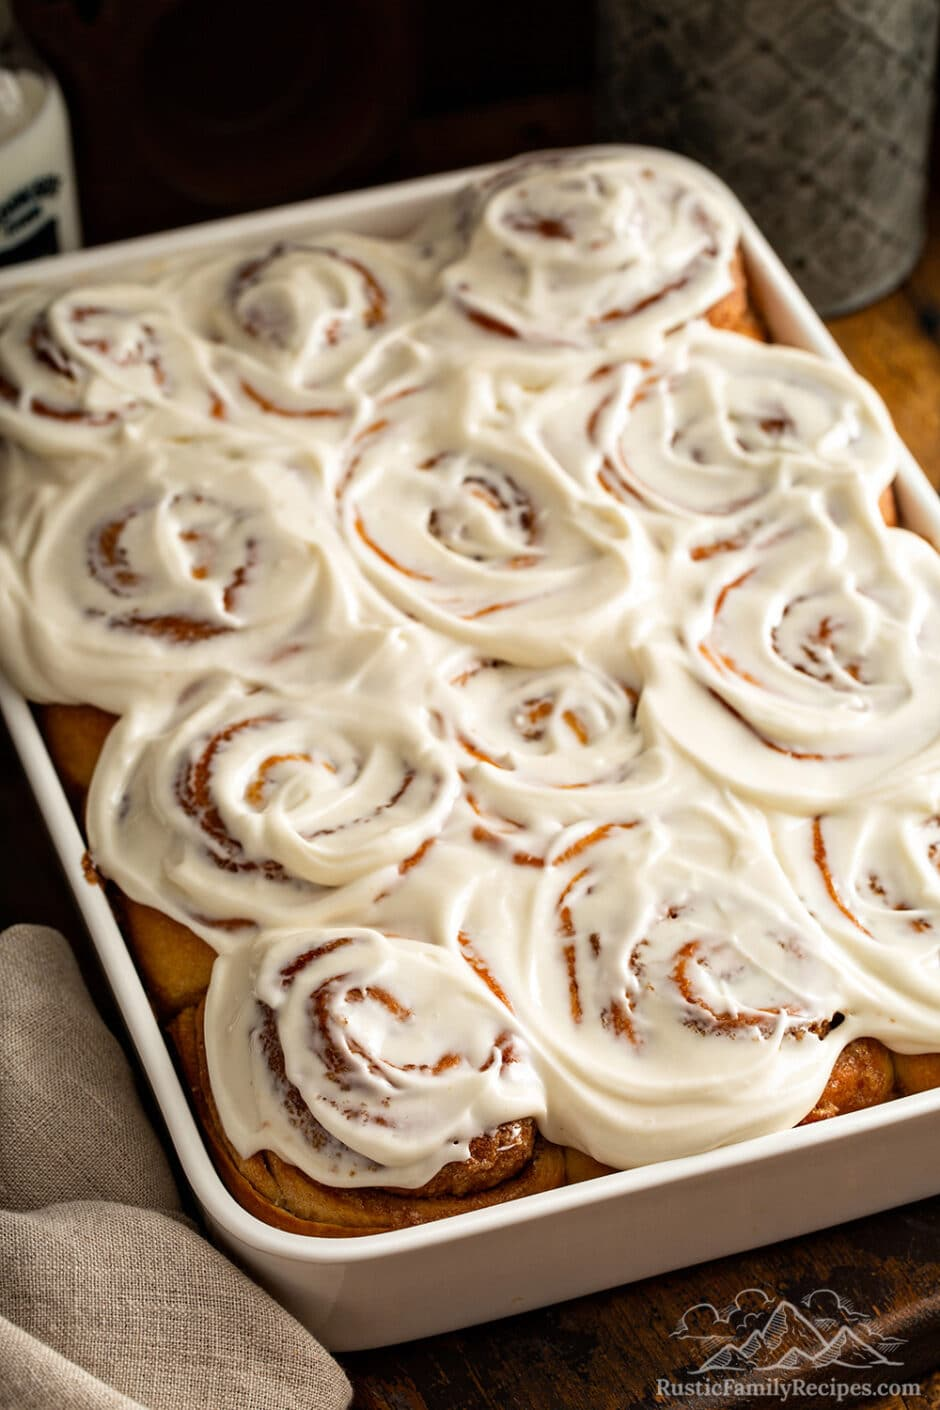 A white baking dish with frosted cinnamon rolls freshly baked.